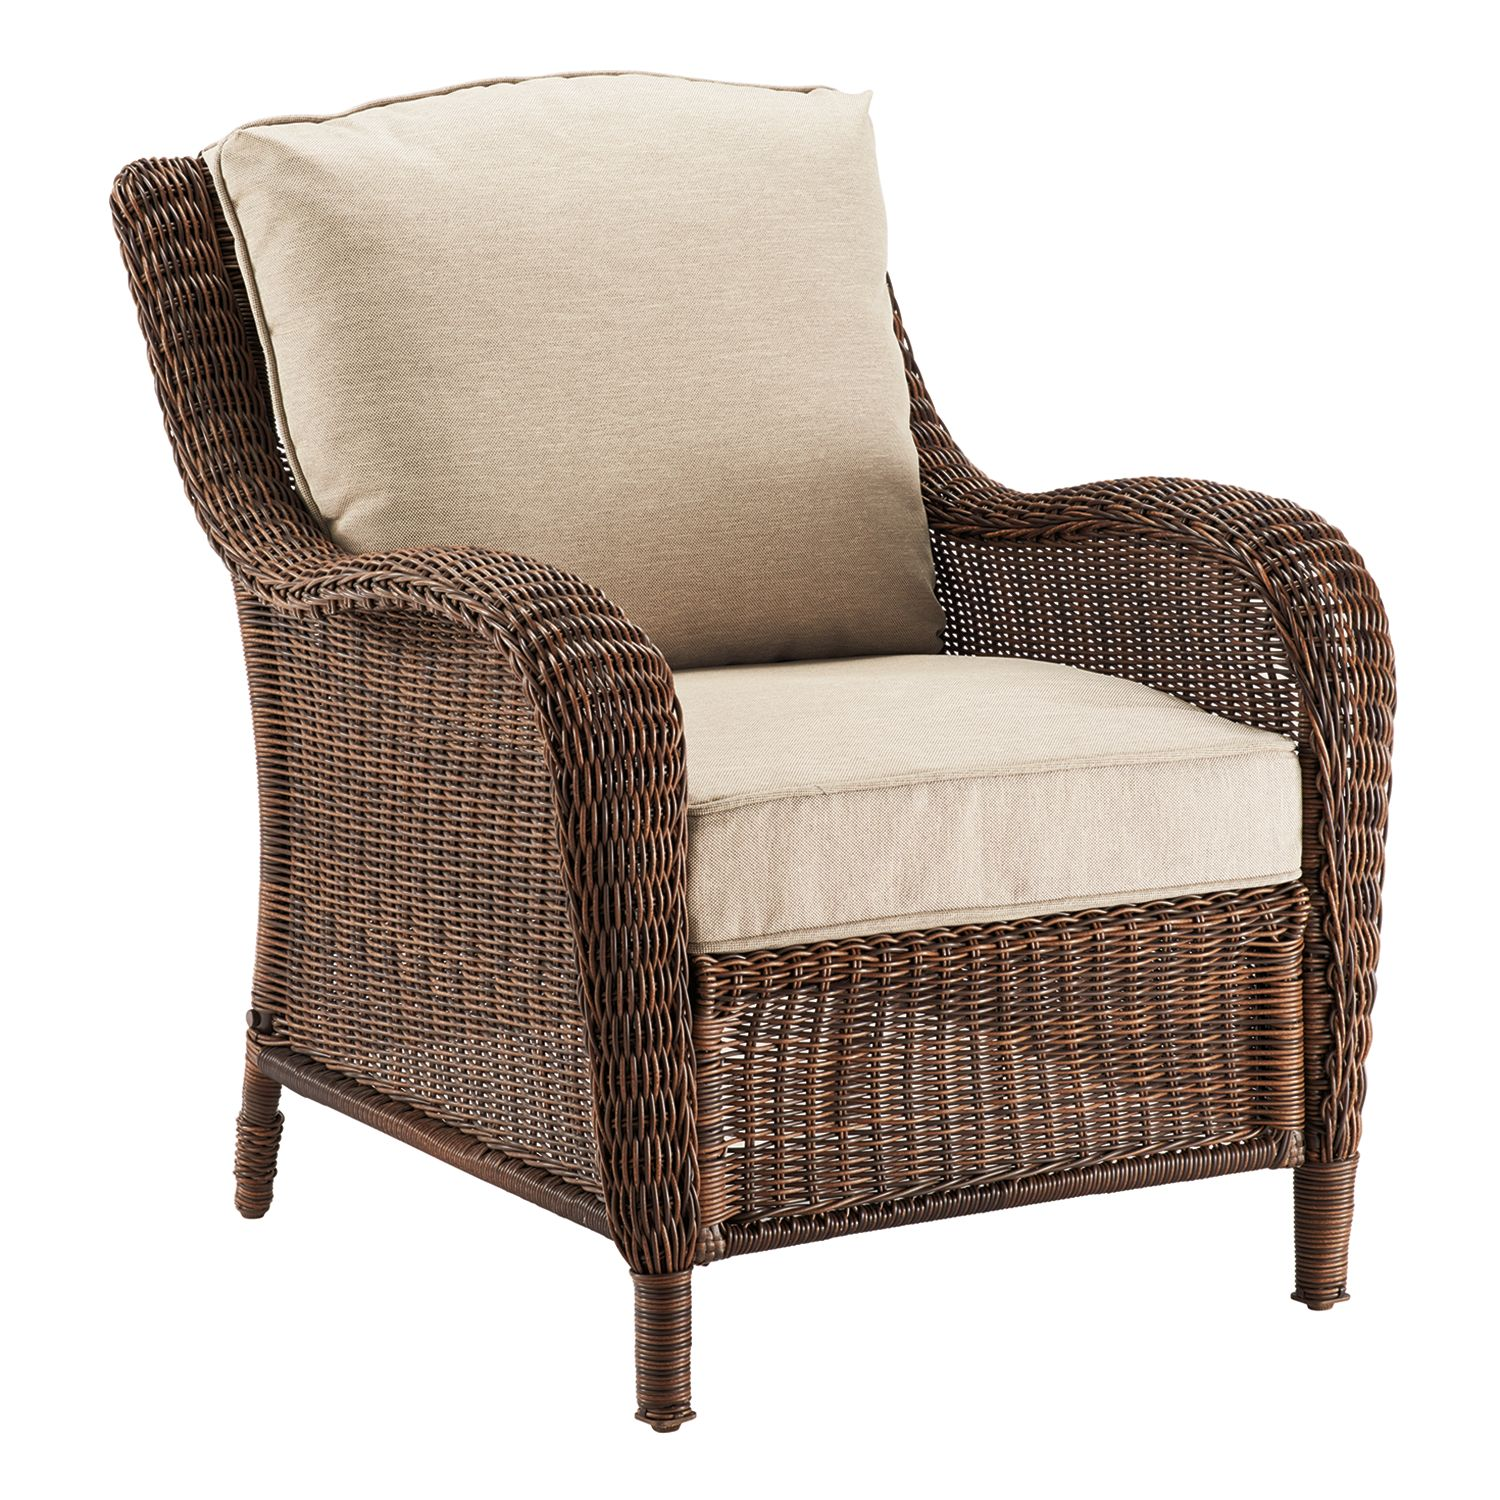 Charmant SONOMA Goods For Life™ Presidio Wicker Chair